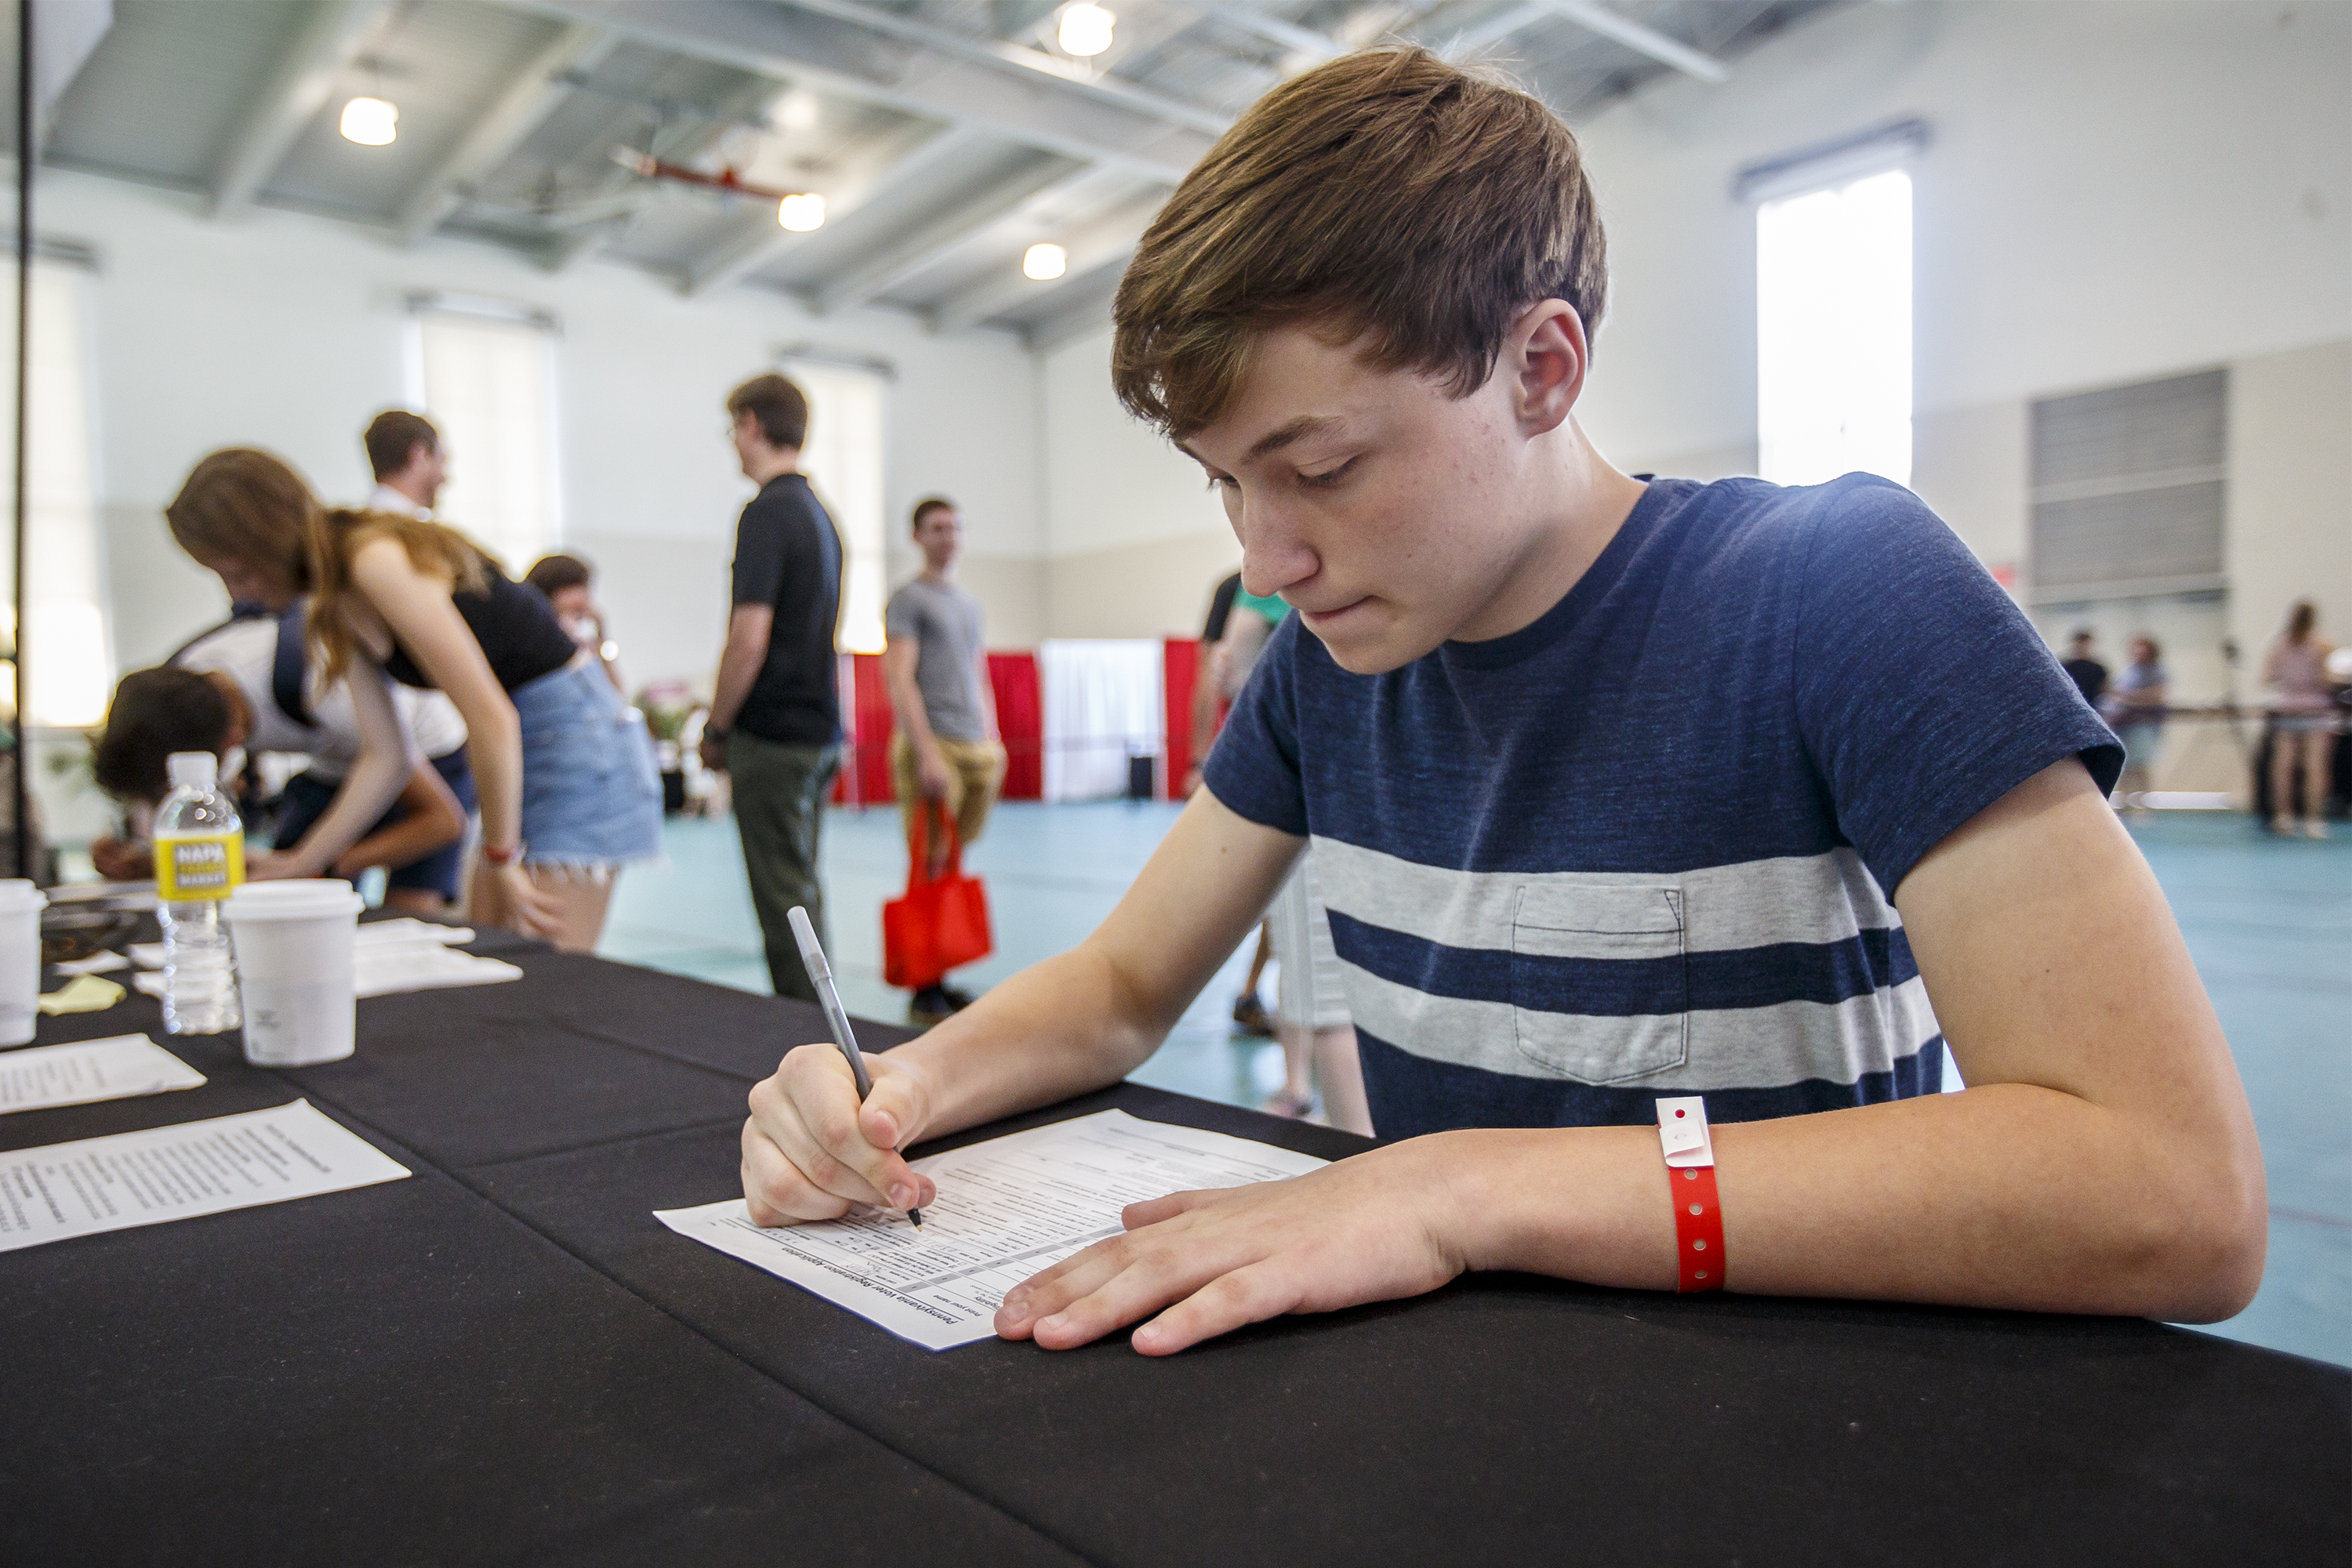 """Incoming Haverford College freshman John Ratliff, 18, of New Jersey fills out a voter registration form. He says having an on-campus polling place """"will draw more students in."""""""